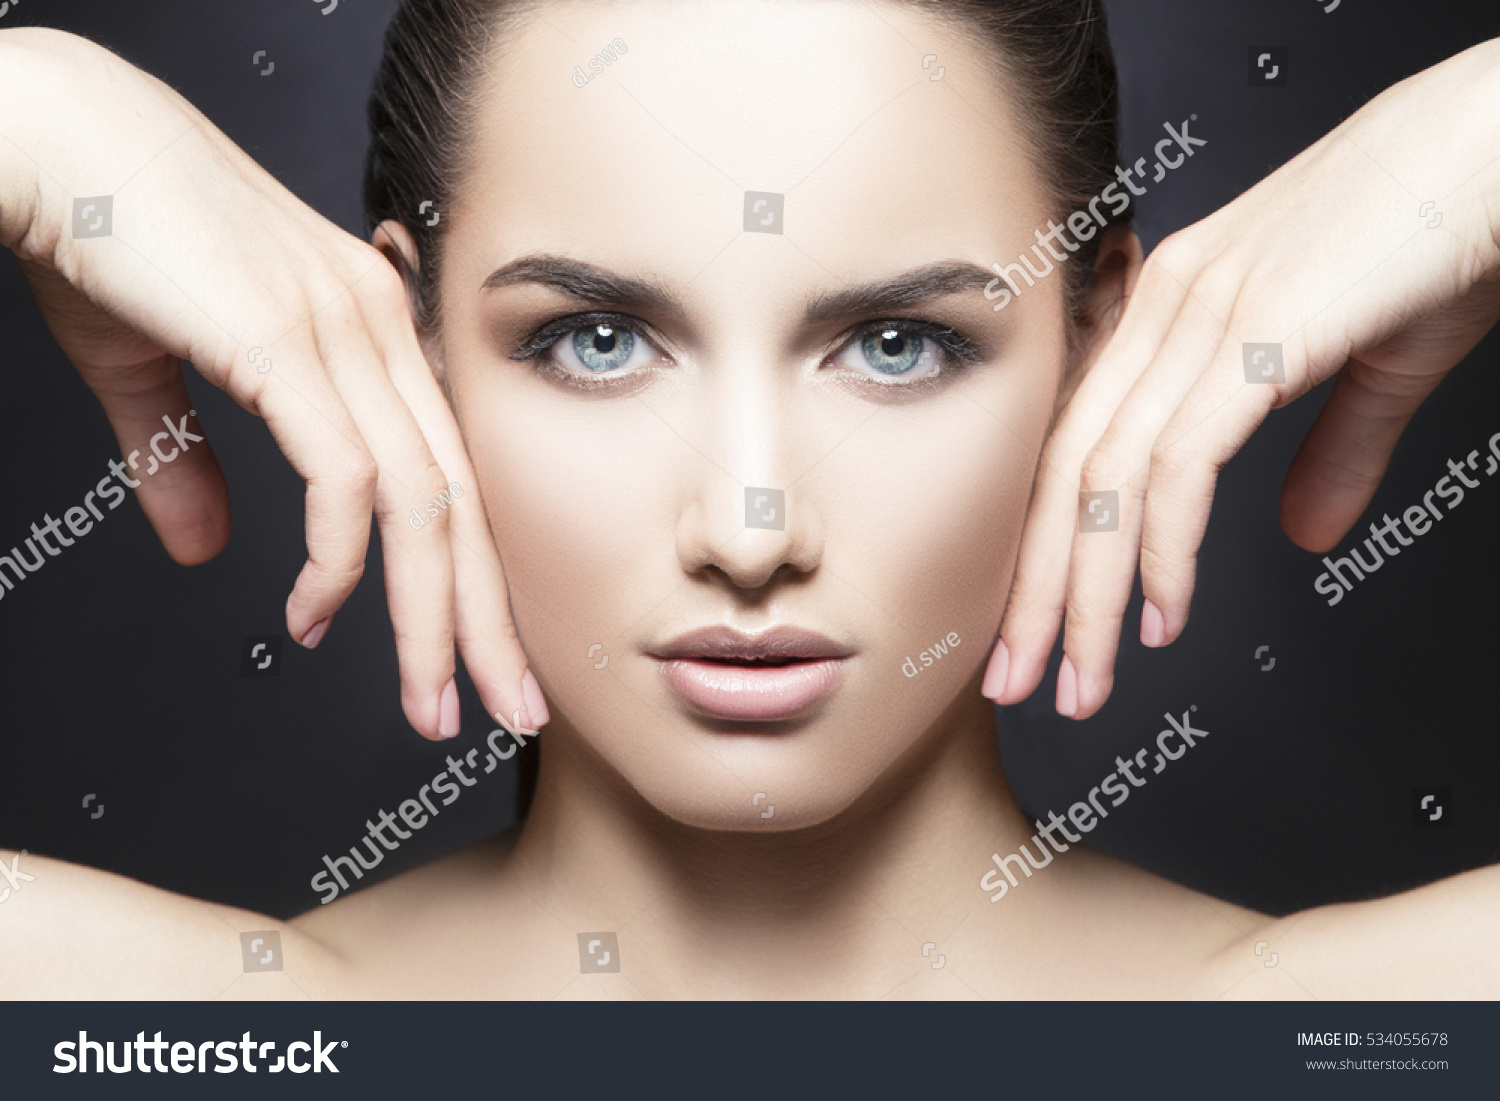 Beauty Fashion Vogue Style Face Caucasian Stock Photo